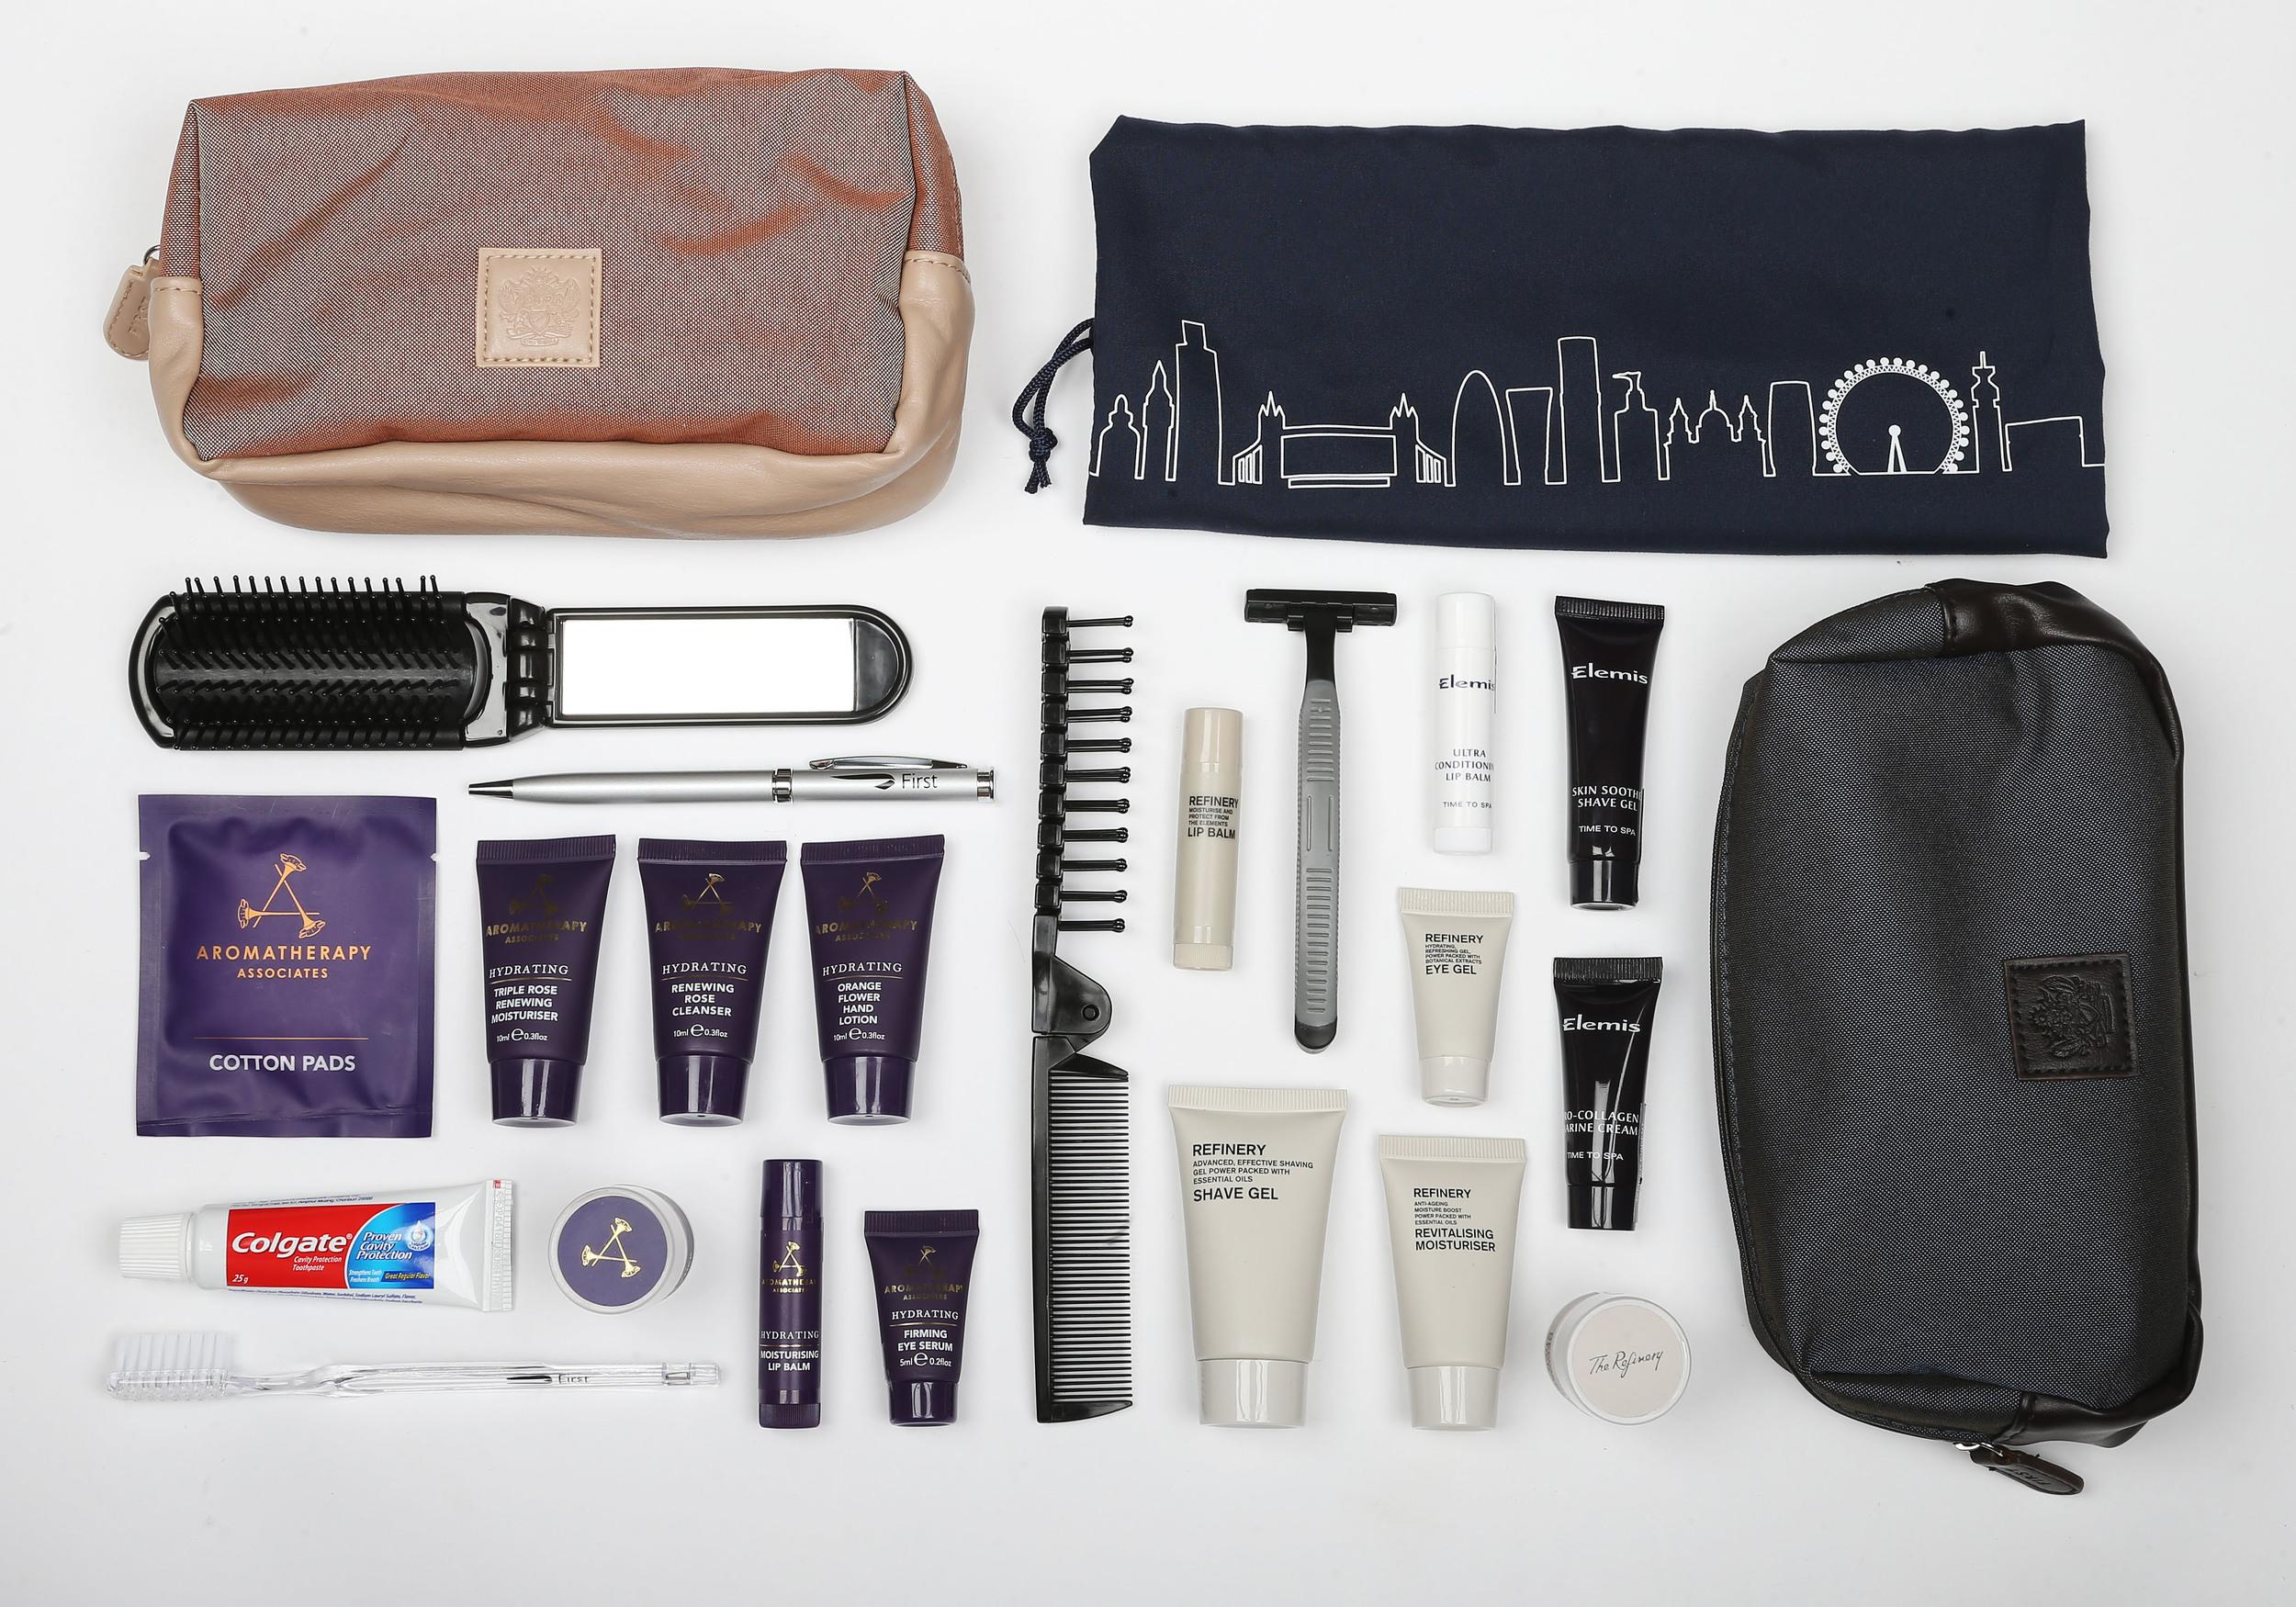 <p><strong>What do you get?</strong> First class men's kit: Foldable comb/brush, razor, toothbrush, toothpaste, pen, Refinery products – shave gel, moisturiser, eye gel, lip balm and deodorant stick.<br /> First class women's kit: Foldable comb with a mirror, cotton pads, pen, toothbrush, toothpaste, Aromatherapy Associates products – rose cleanser and moisturiser, eye serum, orange flower hand lotion, a lip balm and deodorant stick.<br /> Club world women's kit: In an attractive drawstring bag that could easily be a laundry bag later on, BA has put together an attractive kit with Elemis cosmetics (facial wipe, moisturiser, hand and nail cream and lip balm), toothbrush, toothpaste, socks, pen<br /> Club world men's kit: Toothbrush, toothpaste, pen, socks, Elemis skincare products (shave gel, moisturiser and lip balm)<br /> <strong>Best bit of the kit?</strong> The skincare products. But we're fond of the bags too.</p>